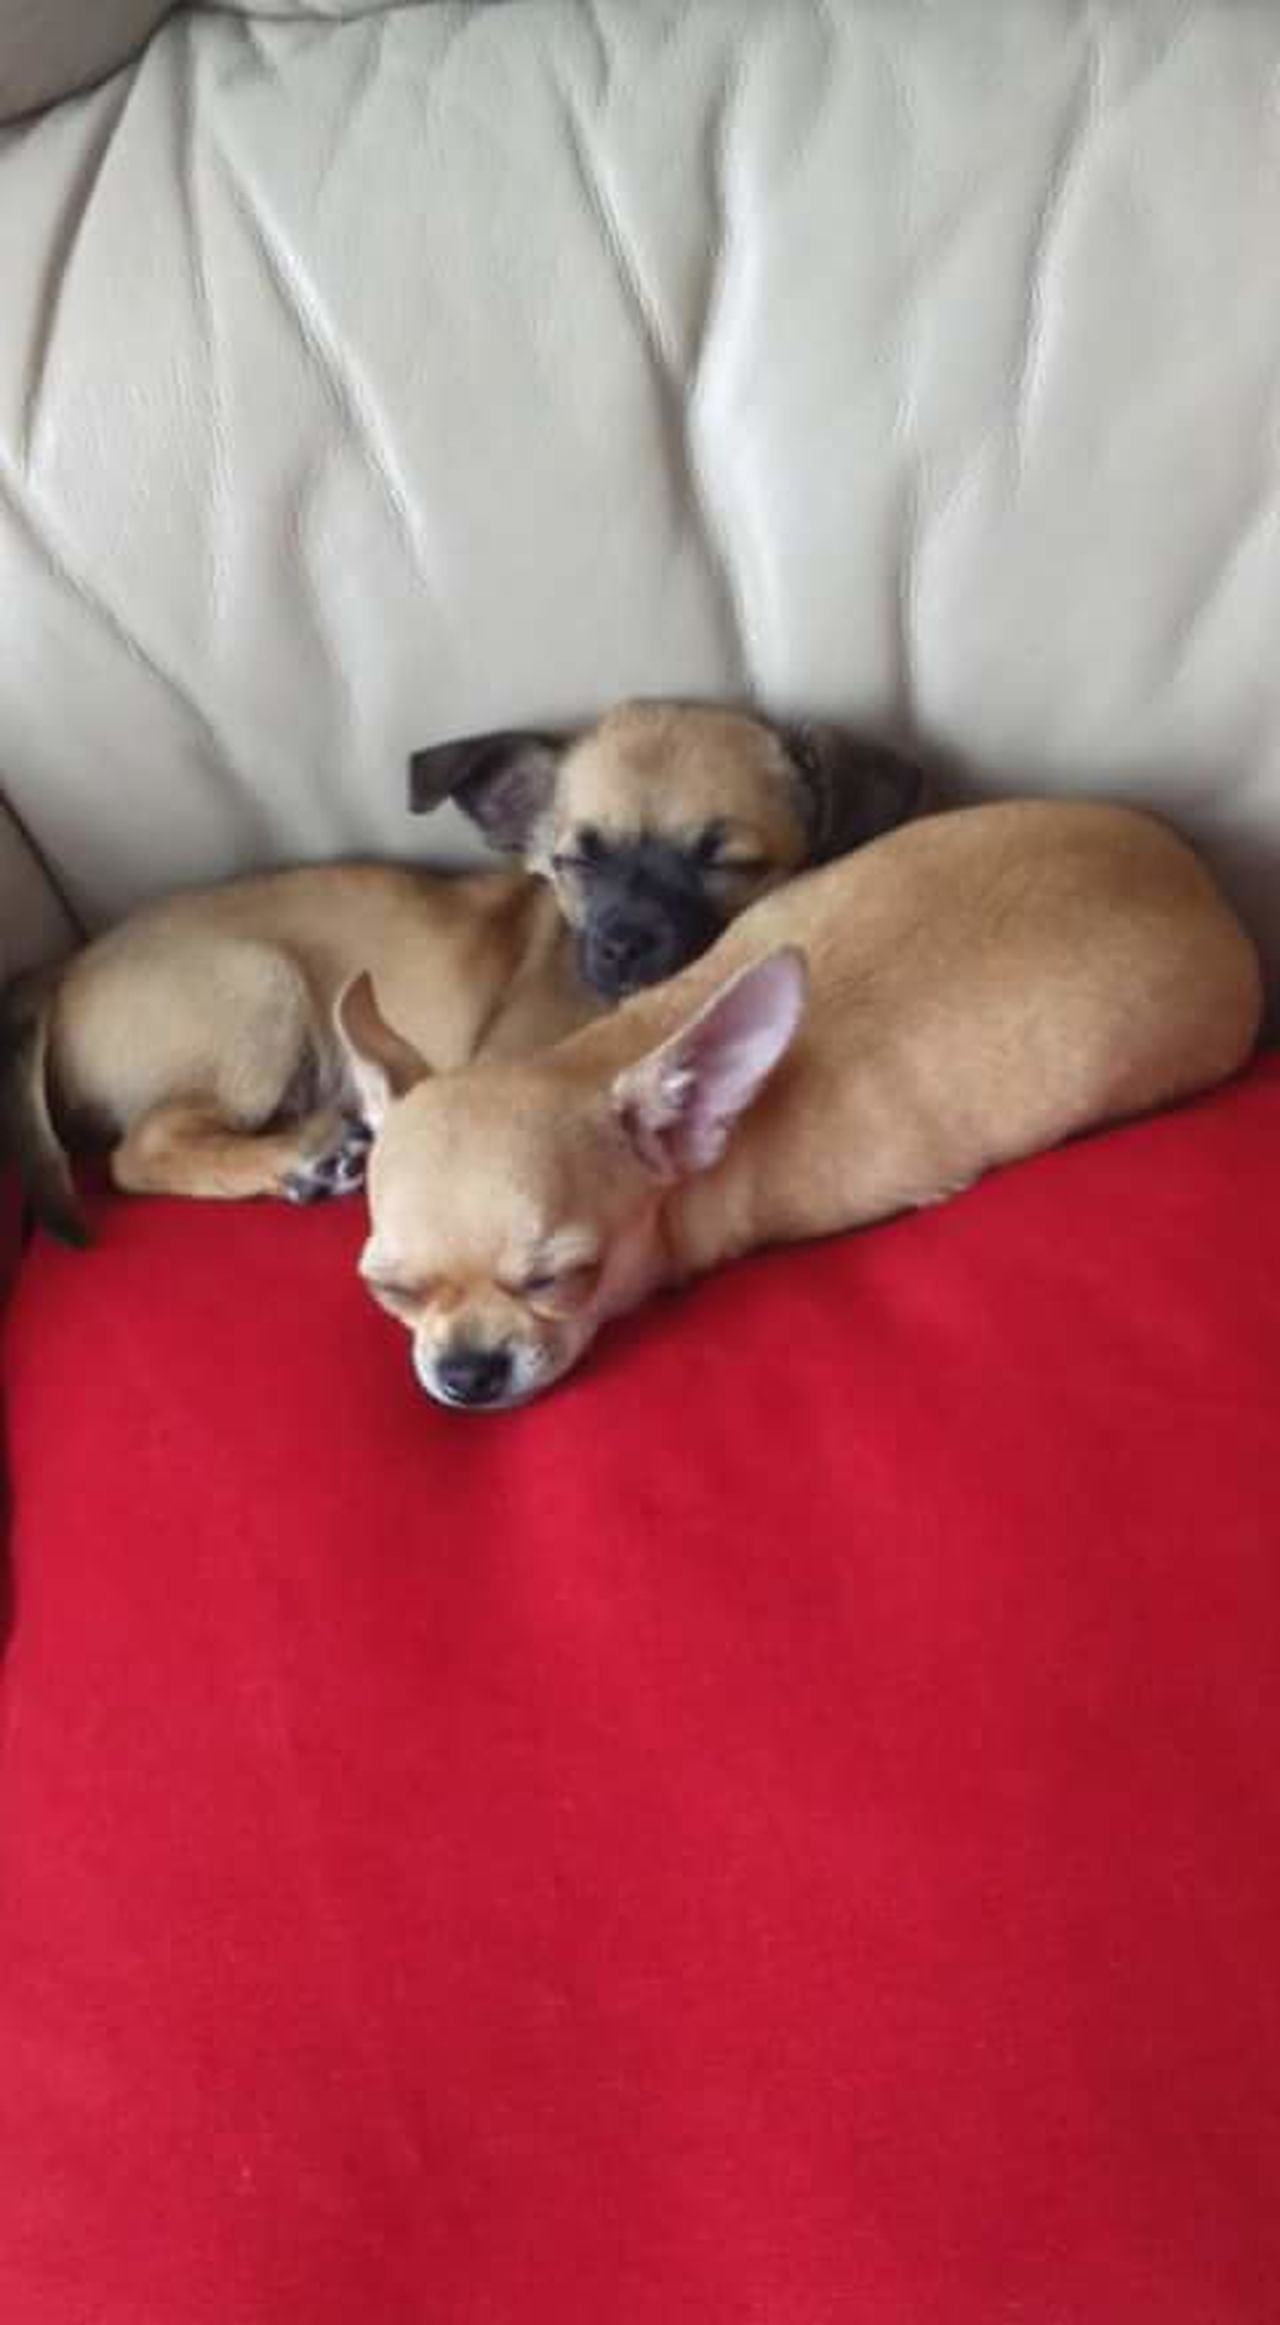 Sleeping Dogs Sleeping Puppies Napping Dogs Napping Puppy Nappin Chihuahua Chihuahuas Chihuahua Puppies Chihuahua Lovers Cute Pets Cute Dogs Cute Puppies My Dogs My Puppies Cute Canines Puppies Dogs Let Sleeping Dogs Lie Two Dogs Chihuahuamix